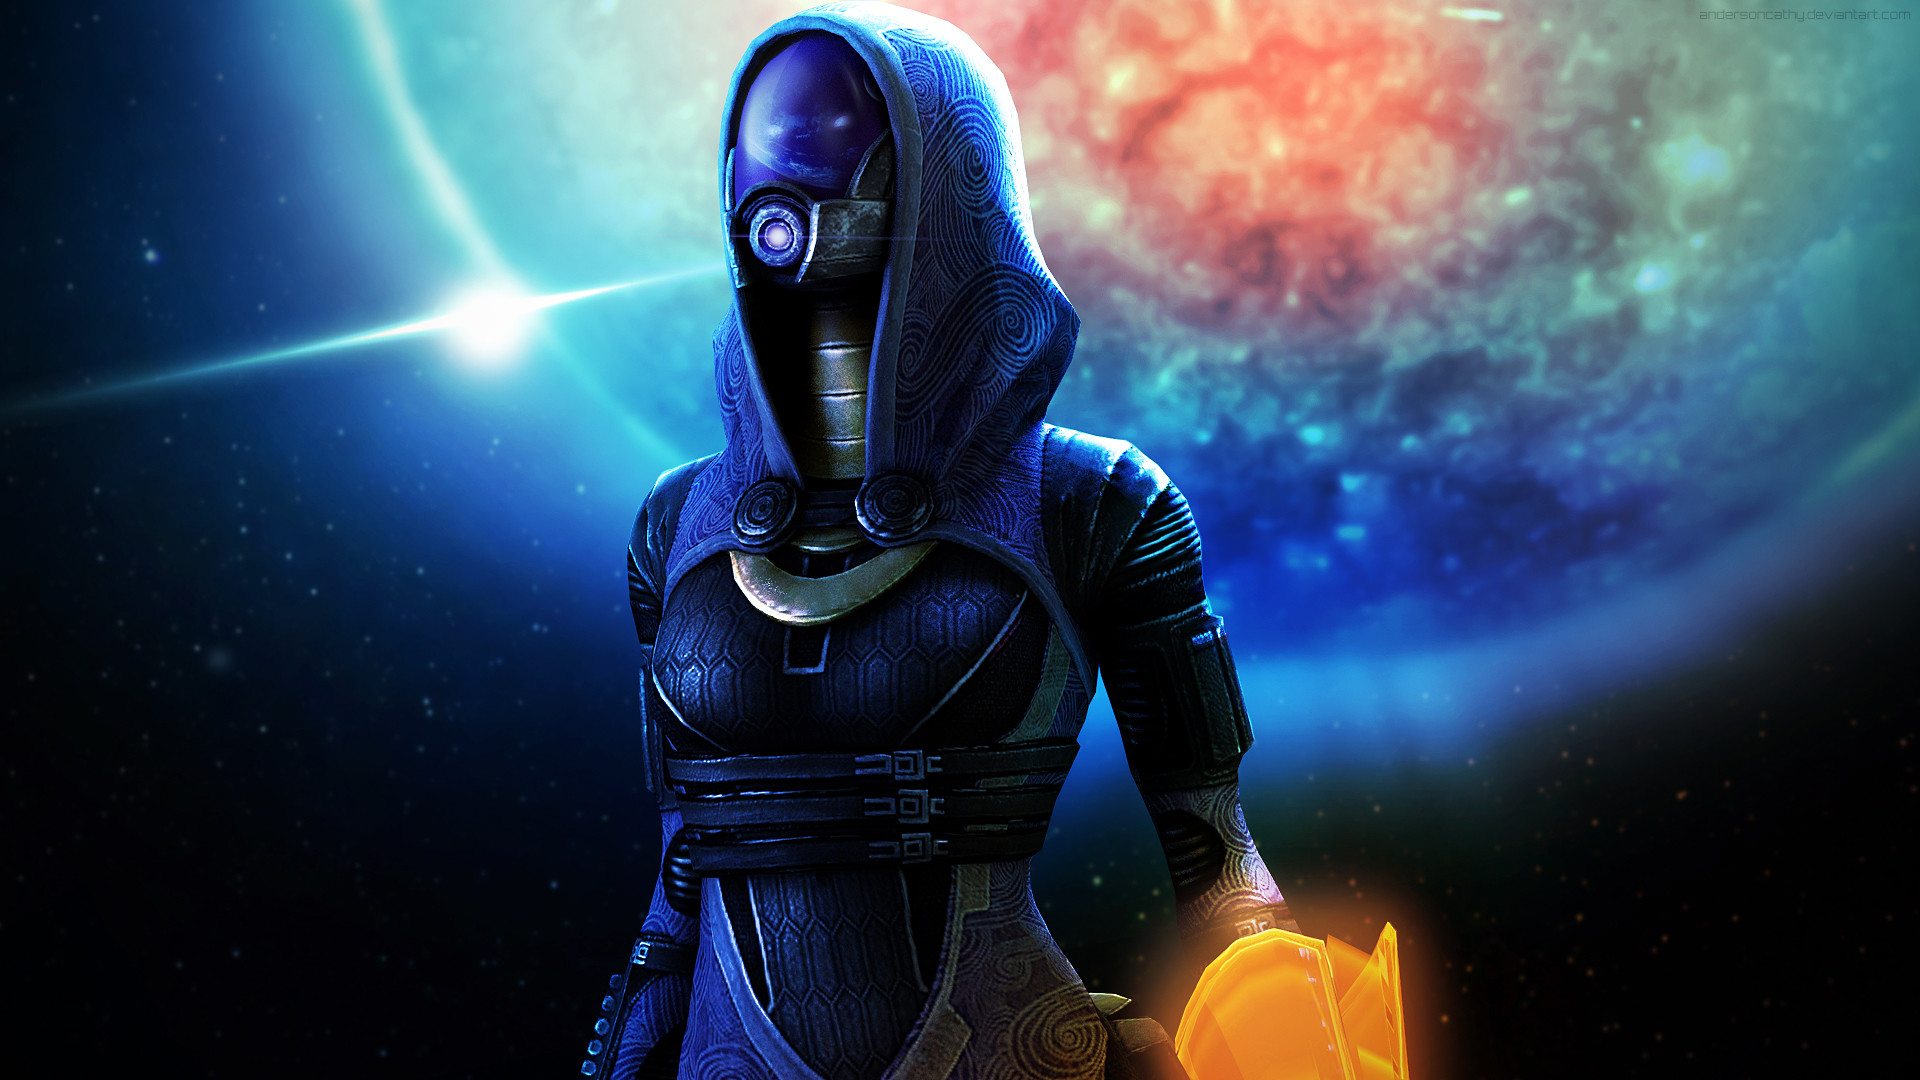 Mass Effect Tali Wallpaper 86 Images